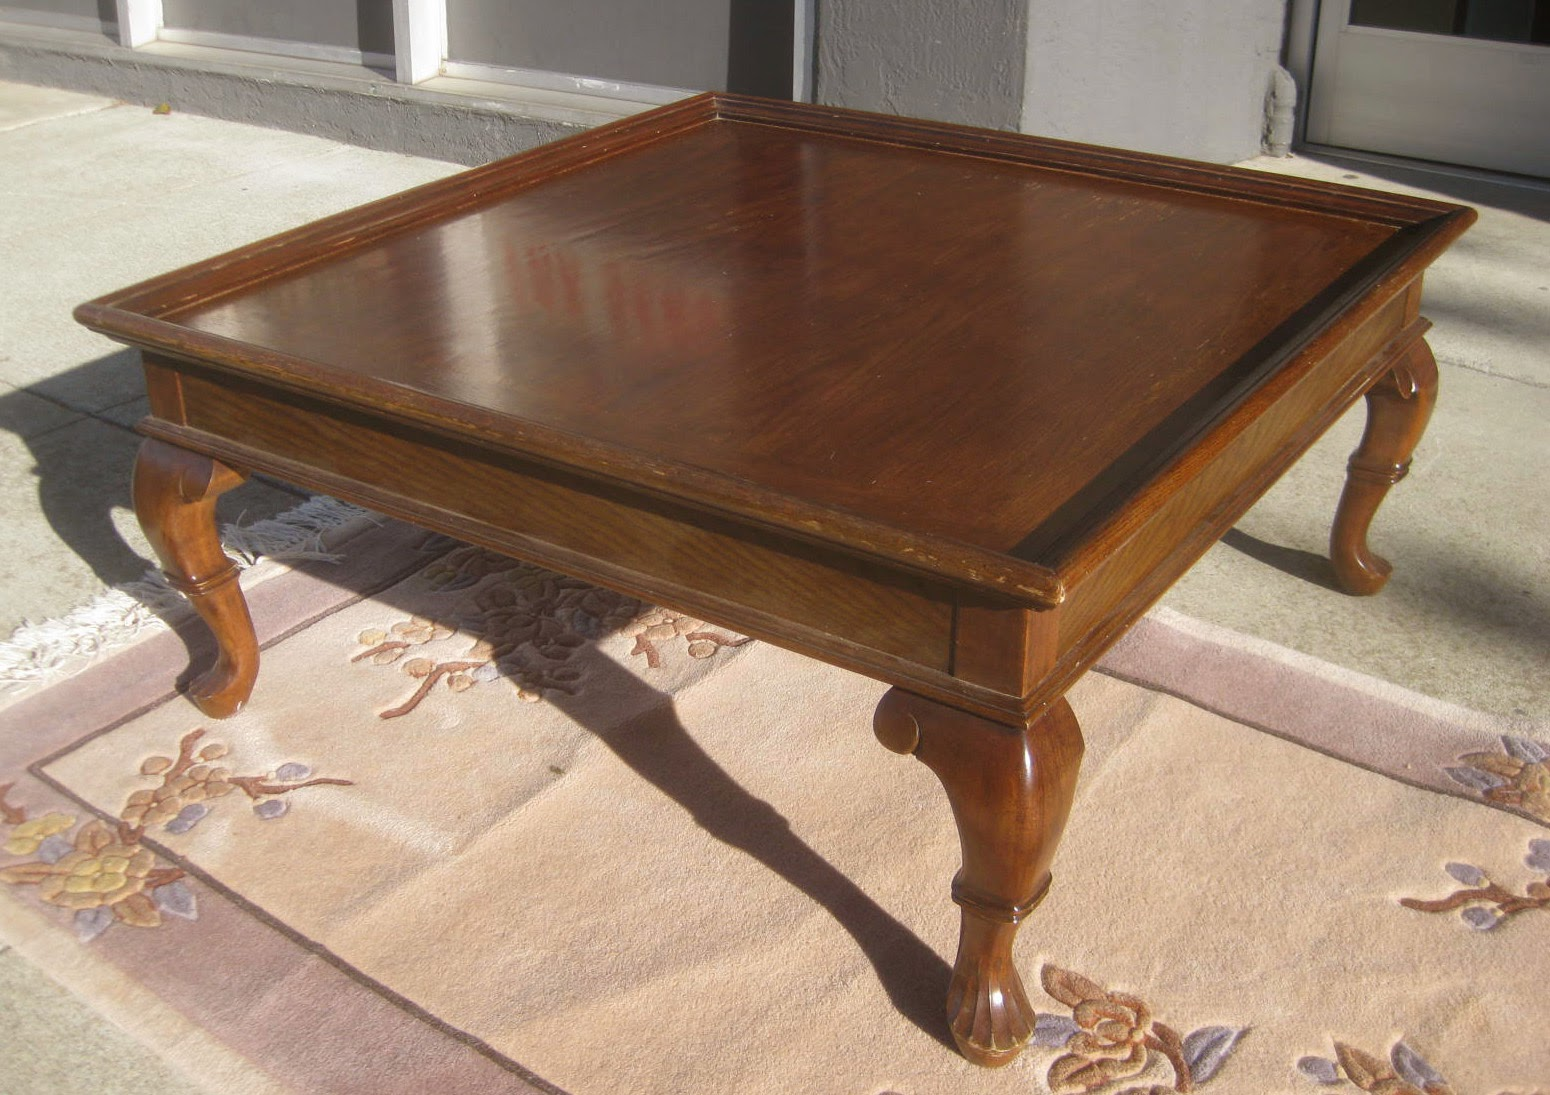 Uhuru furniture collectibles sold large square coffee table 40 Large square coffee table